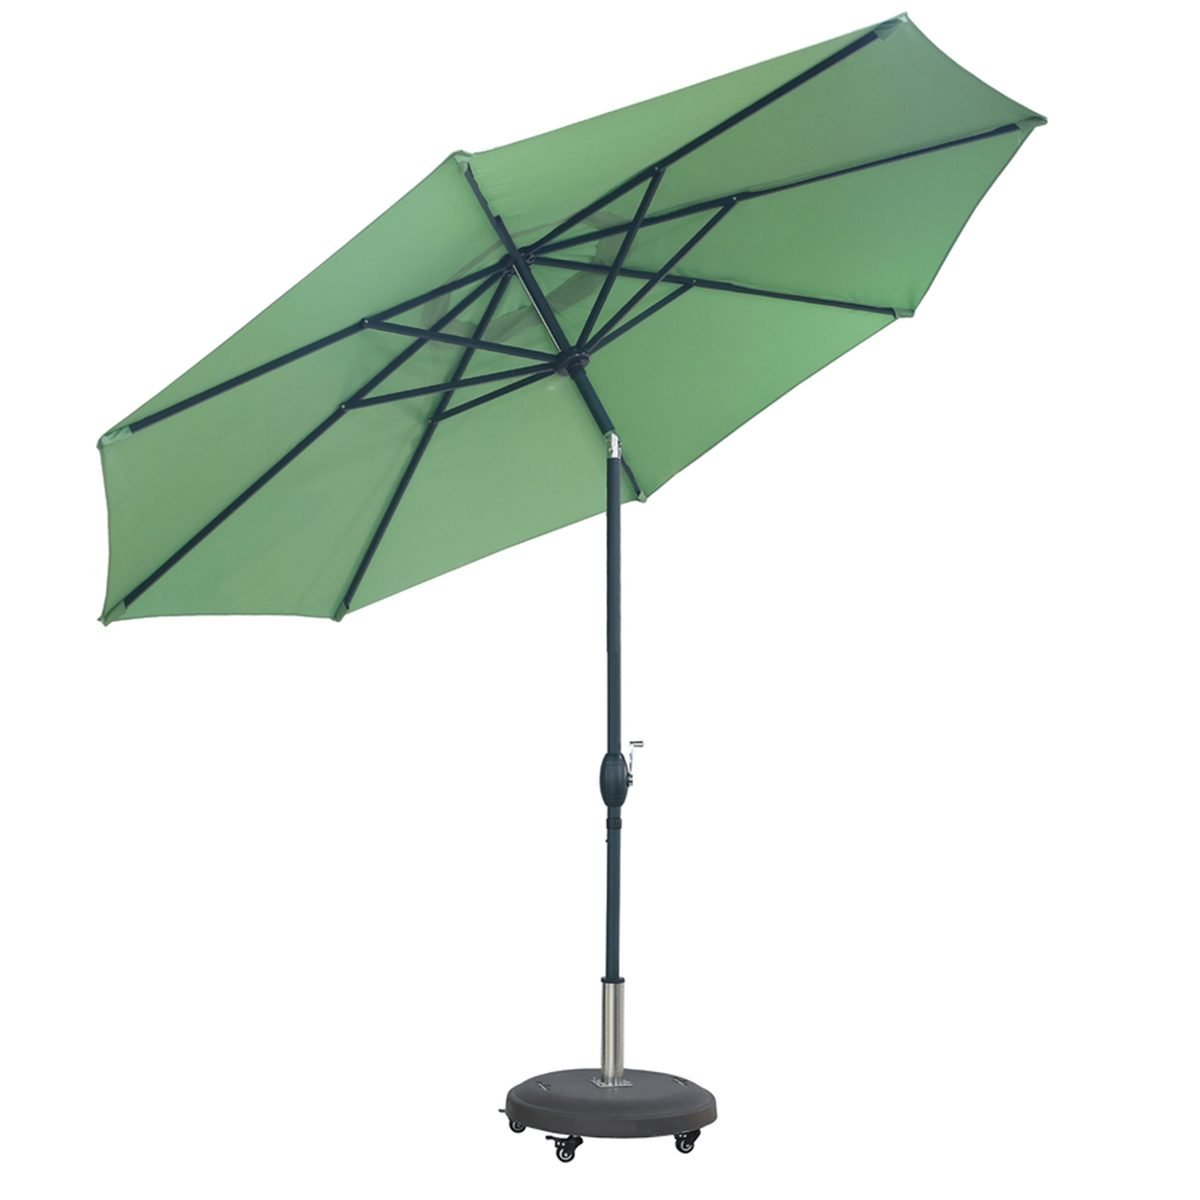 tilting umbrella